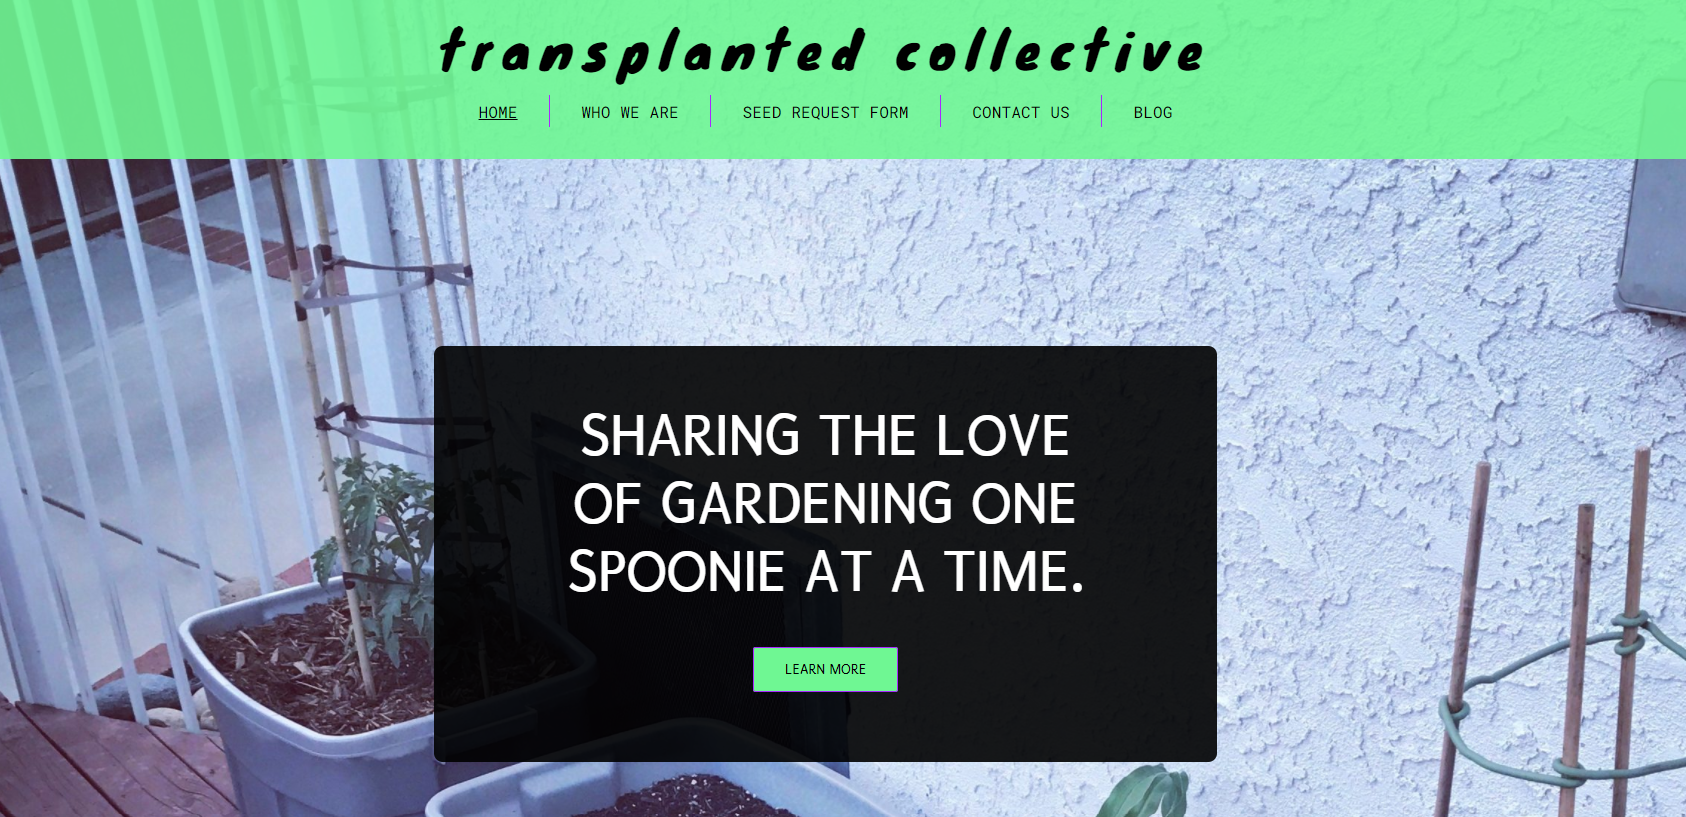 transplanted collective website screenshot that says: Transplanted Collective, Sharing the Love of Gardening One Spoonie at a Time